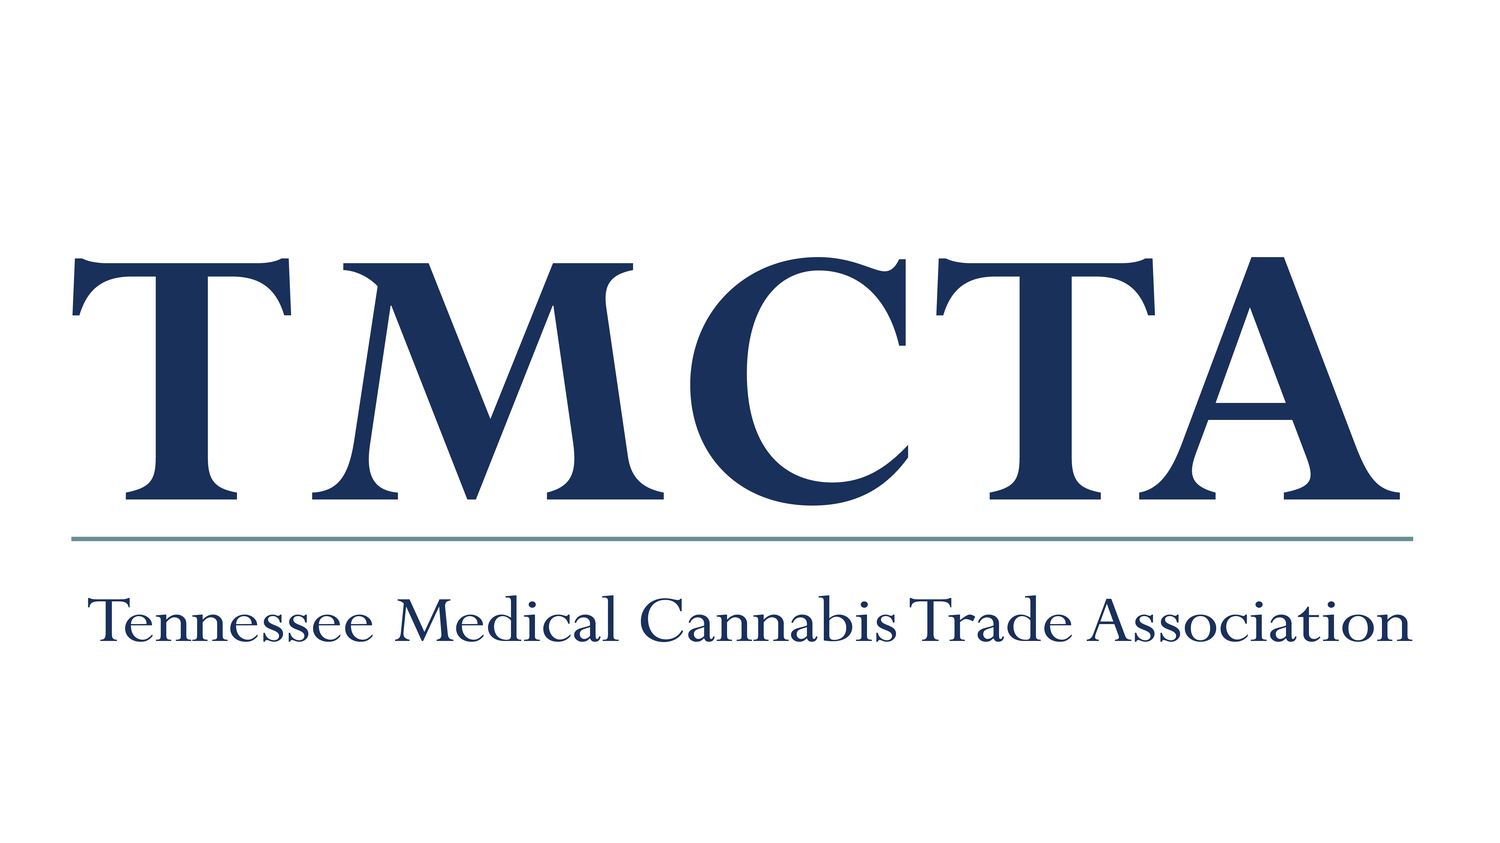 Tennessee Medical Cannabis Trade Association